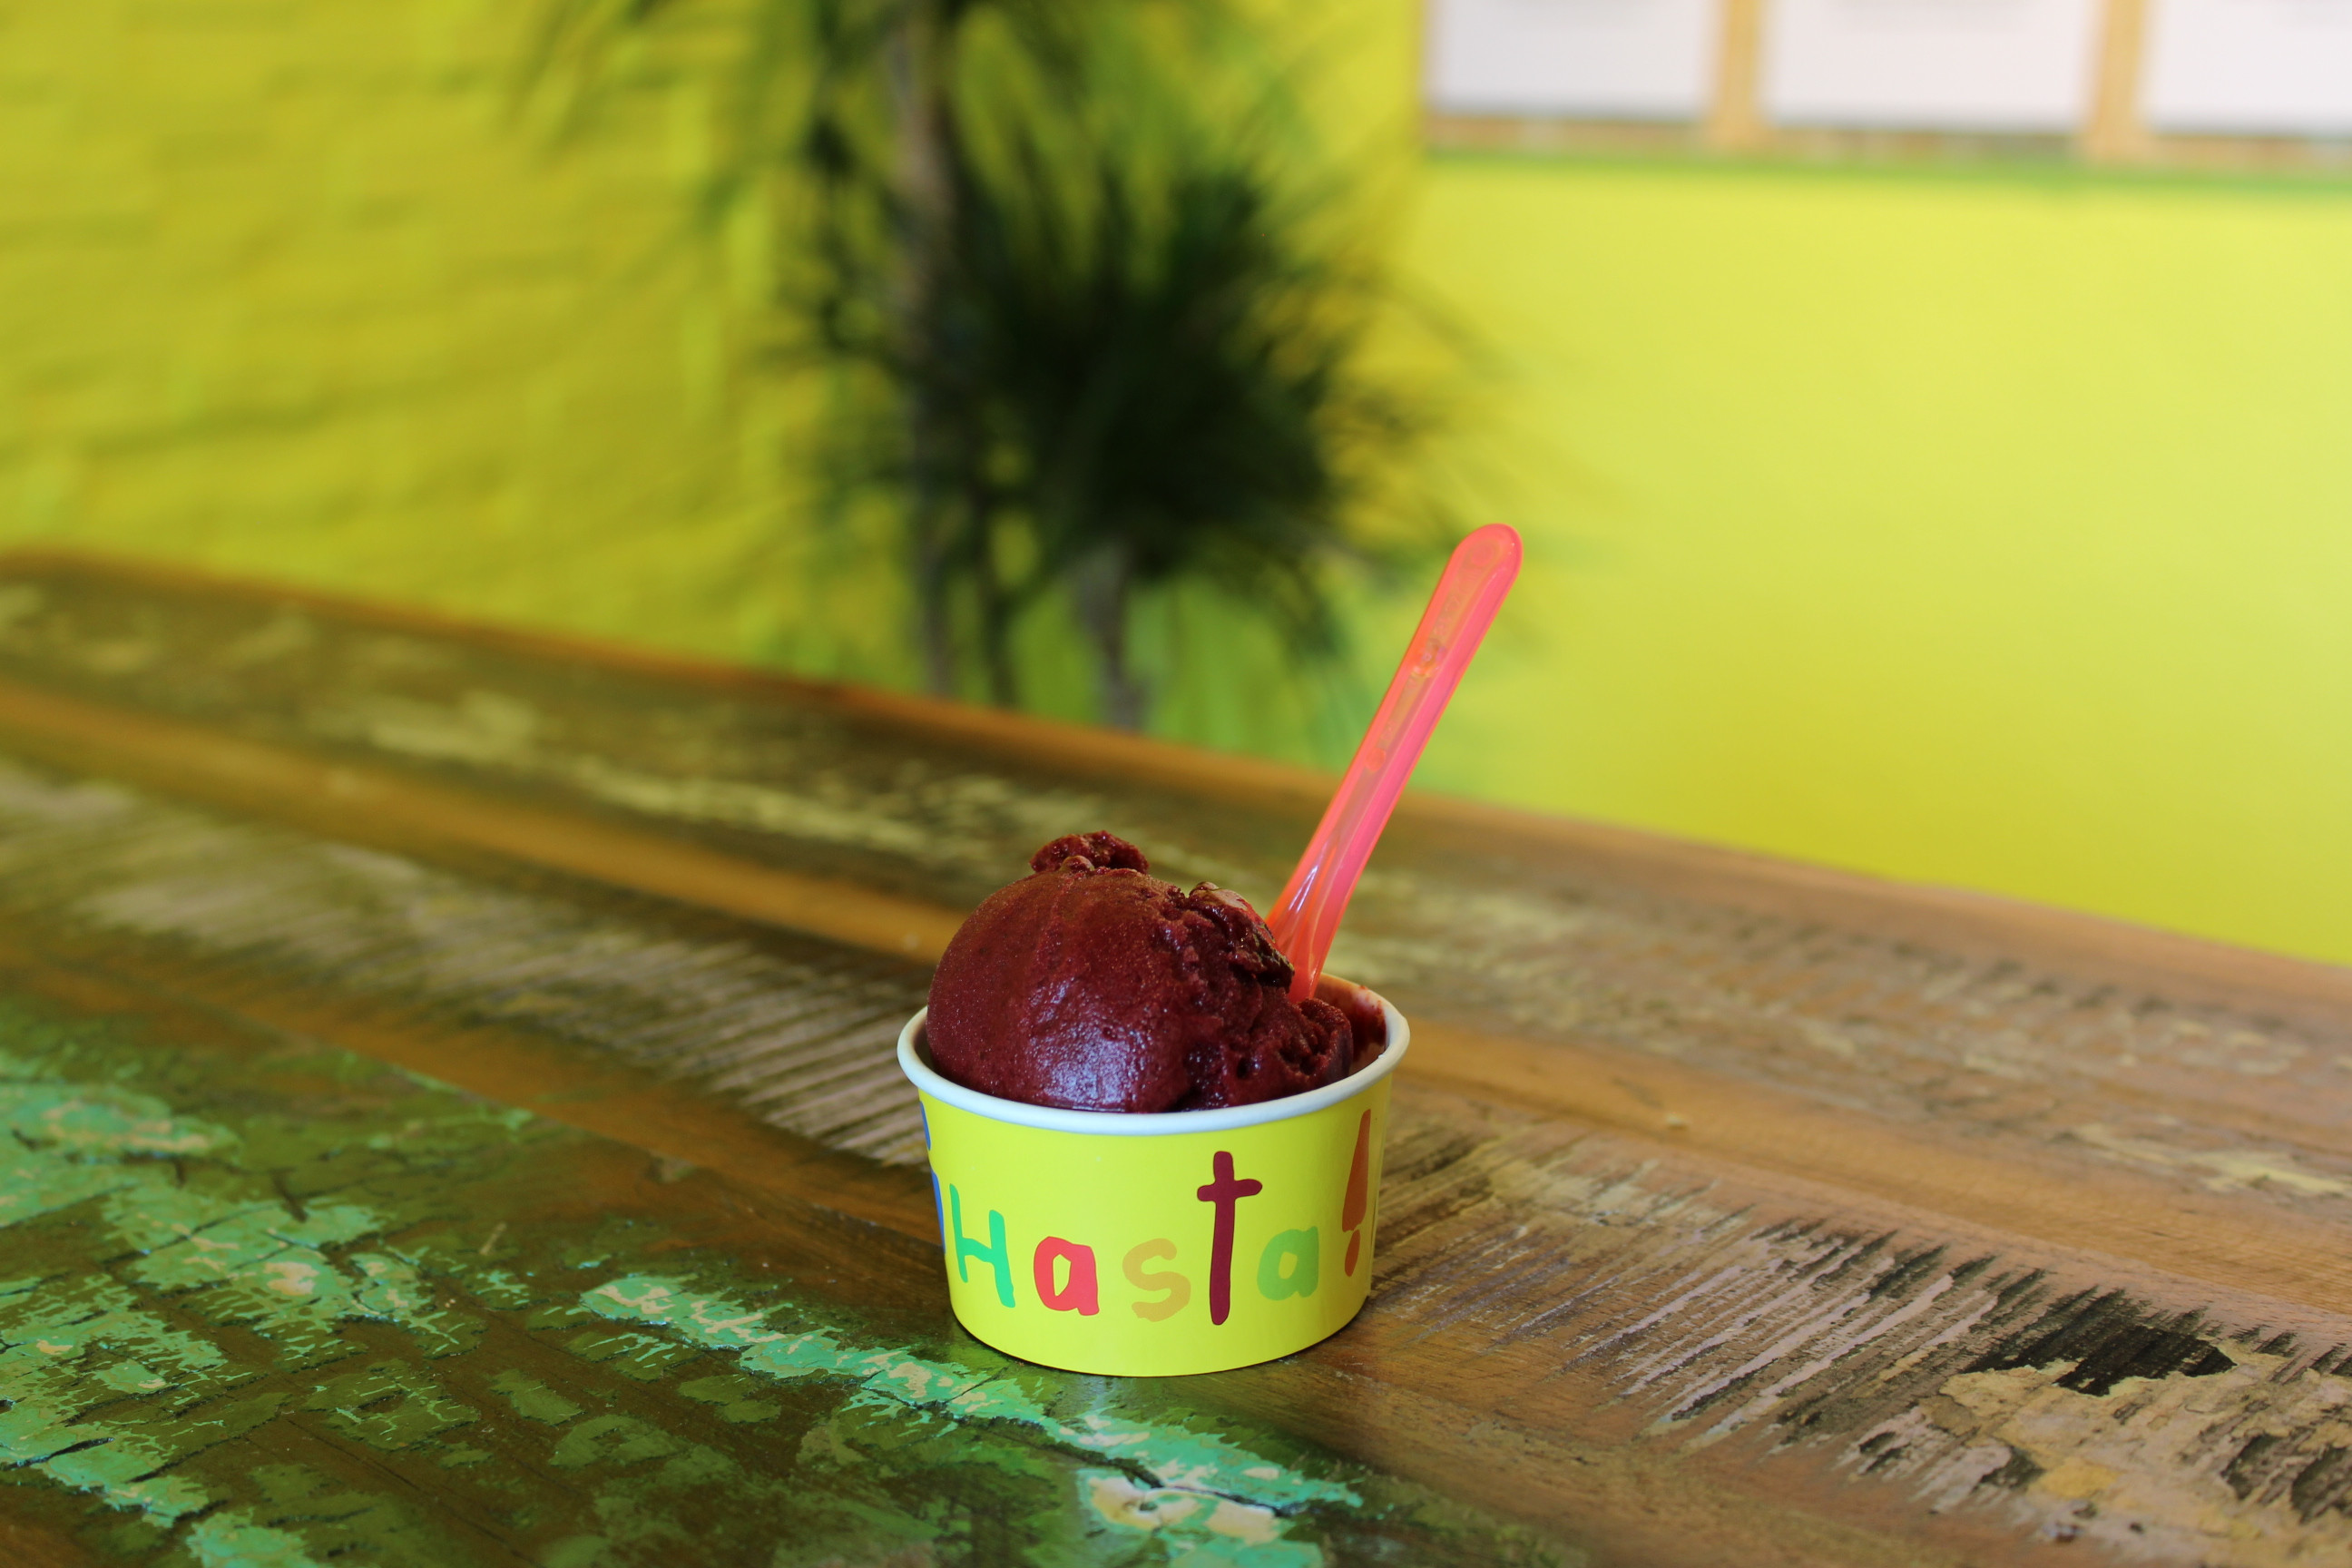 Small scoop of dark red ice cream in neon yellow paper cup